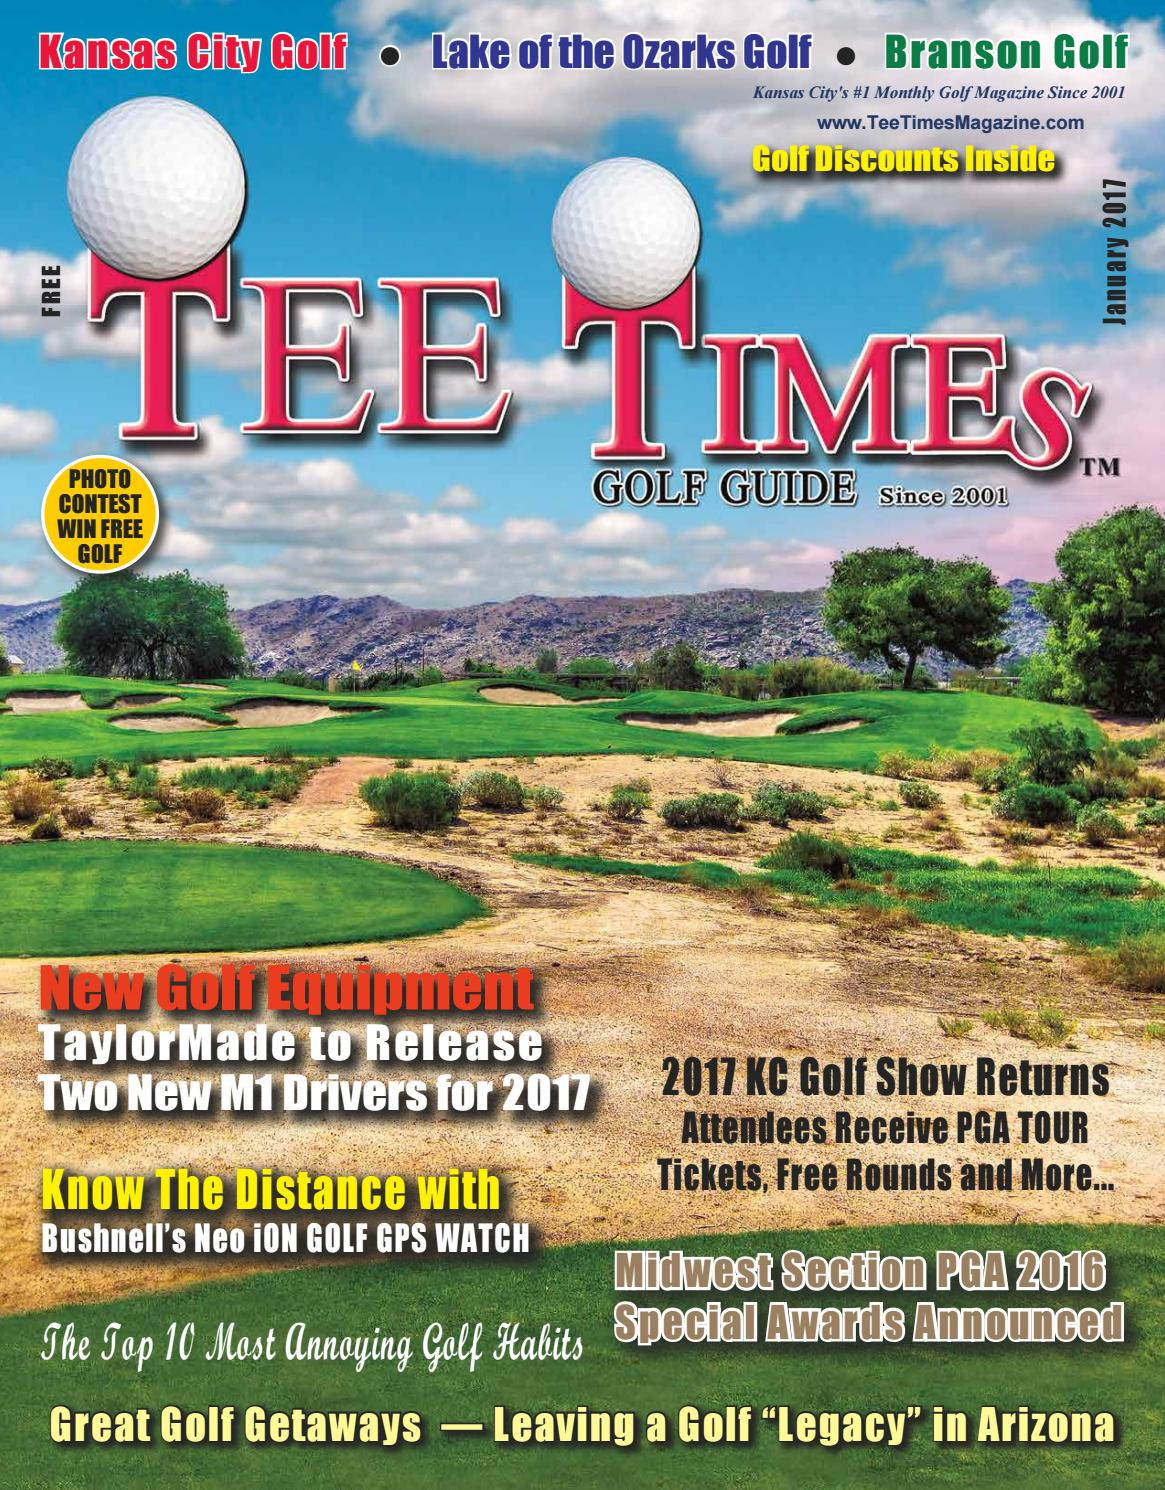 tee times golf guide magazine january 2017 issue by tee times golf